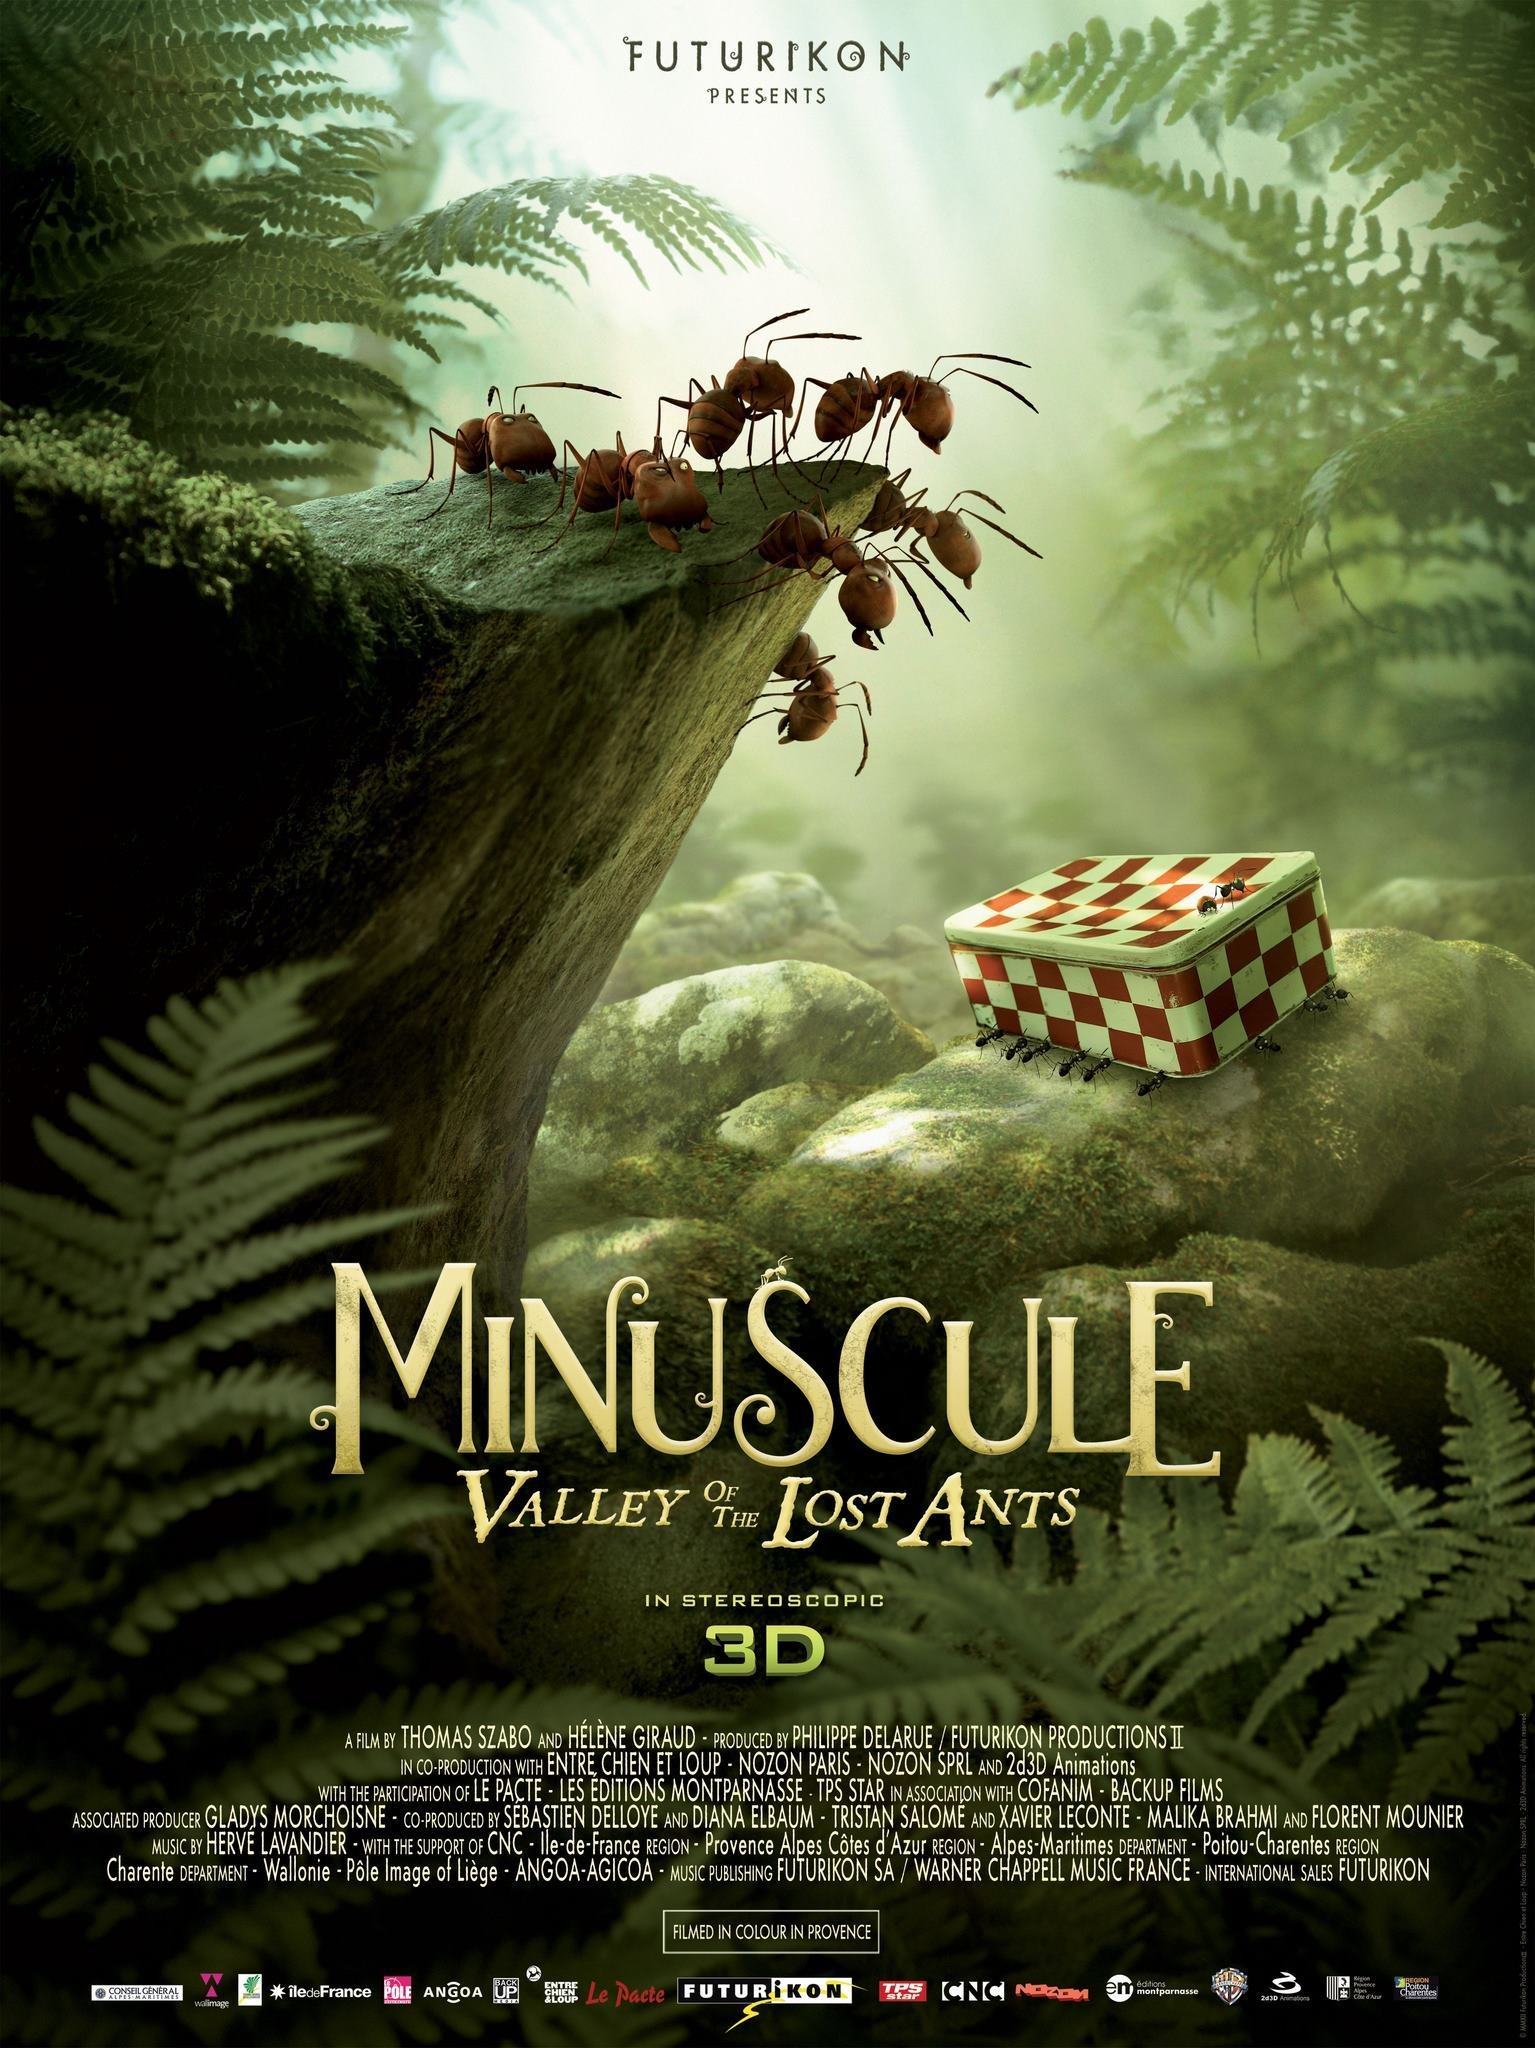 Minuscule Valley of the Lost Ants Review